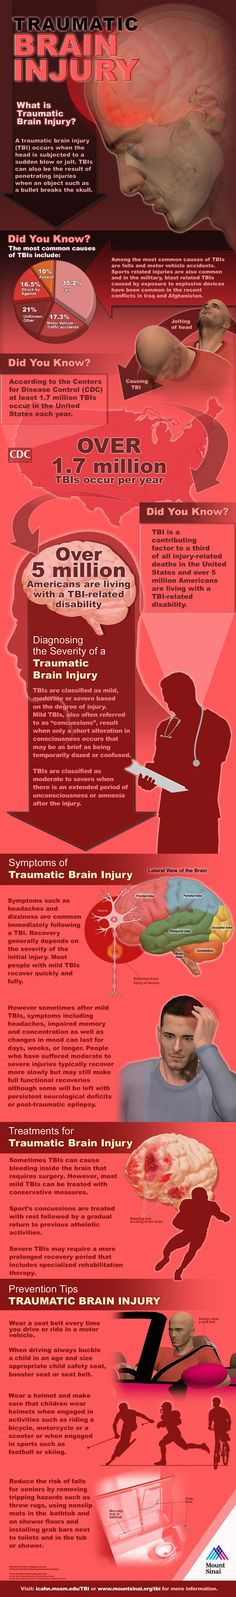 A traumatic brain injury occurs when the head is subjected to a sudden blow or jolt. The most common injuries are from falls, motor vehicle accidents, and sports. Traumatic brain injuries are a contributing factor to a third of all injury-related deaths. Learn more at icahn.mssm.edu/... #Health #Wellness #Brain